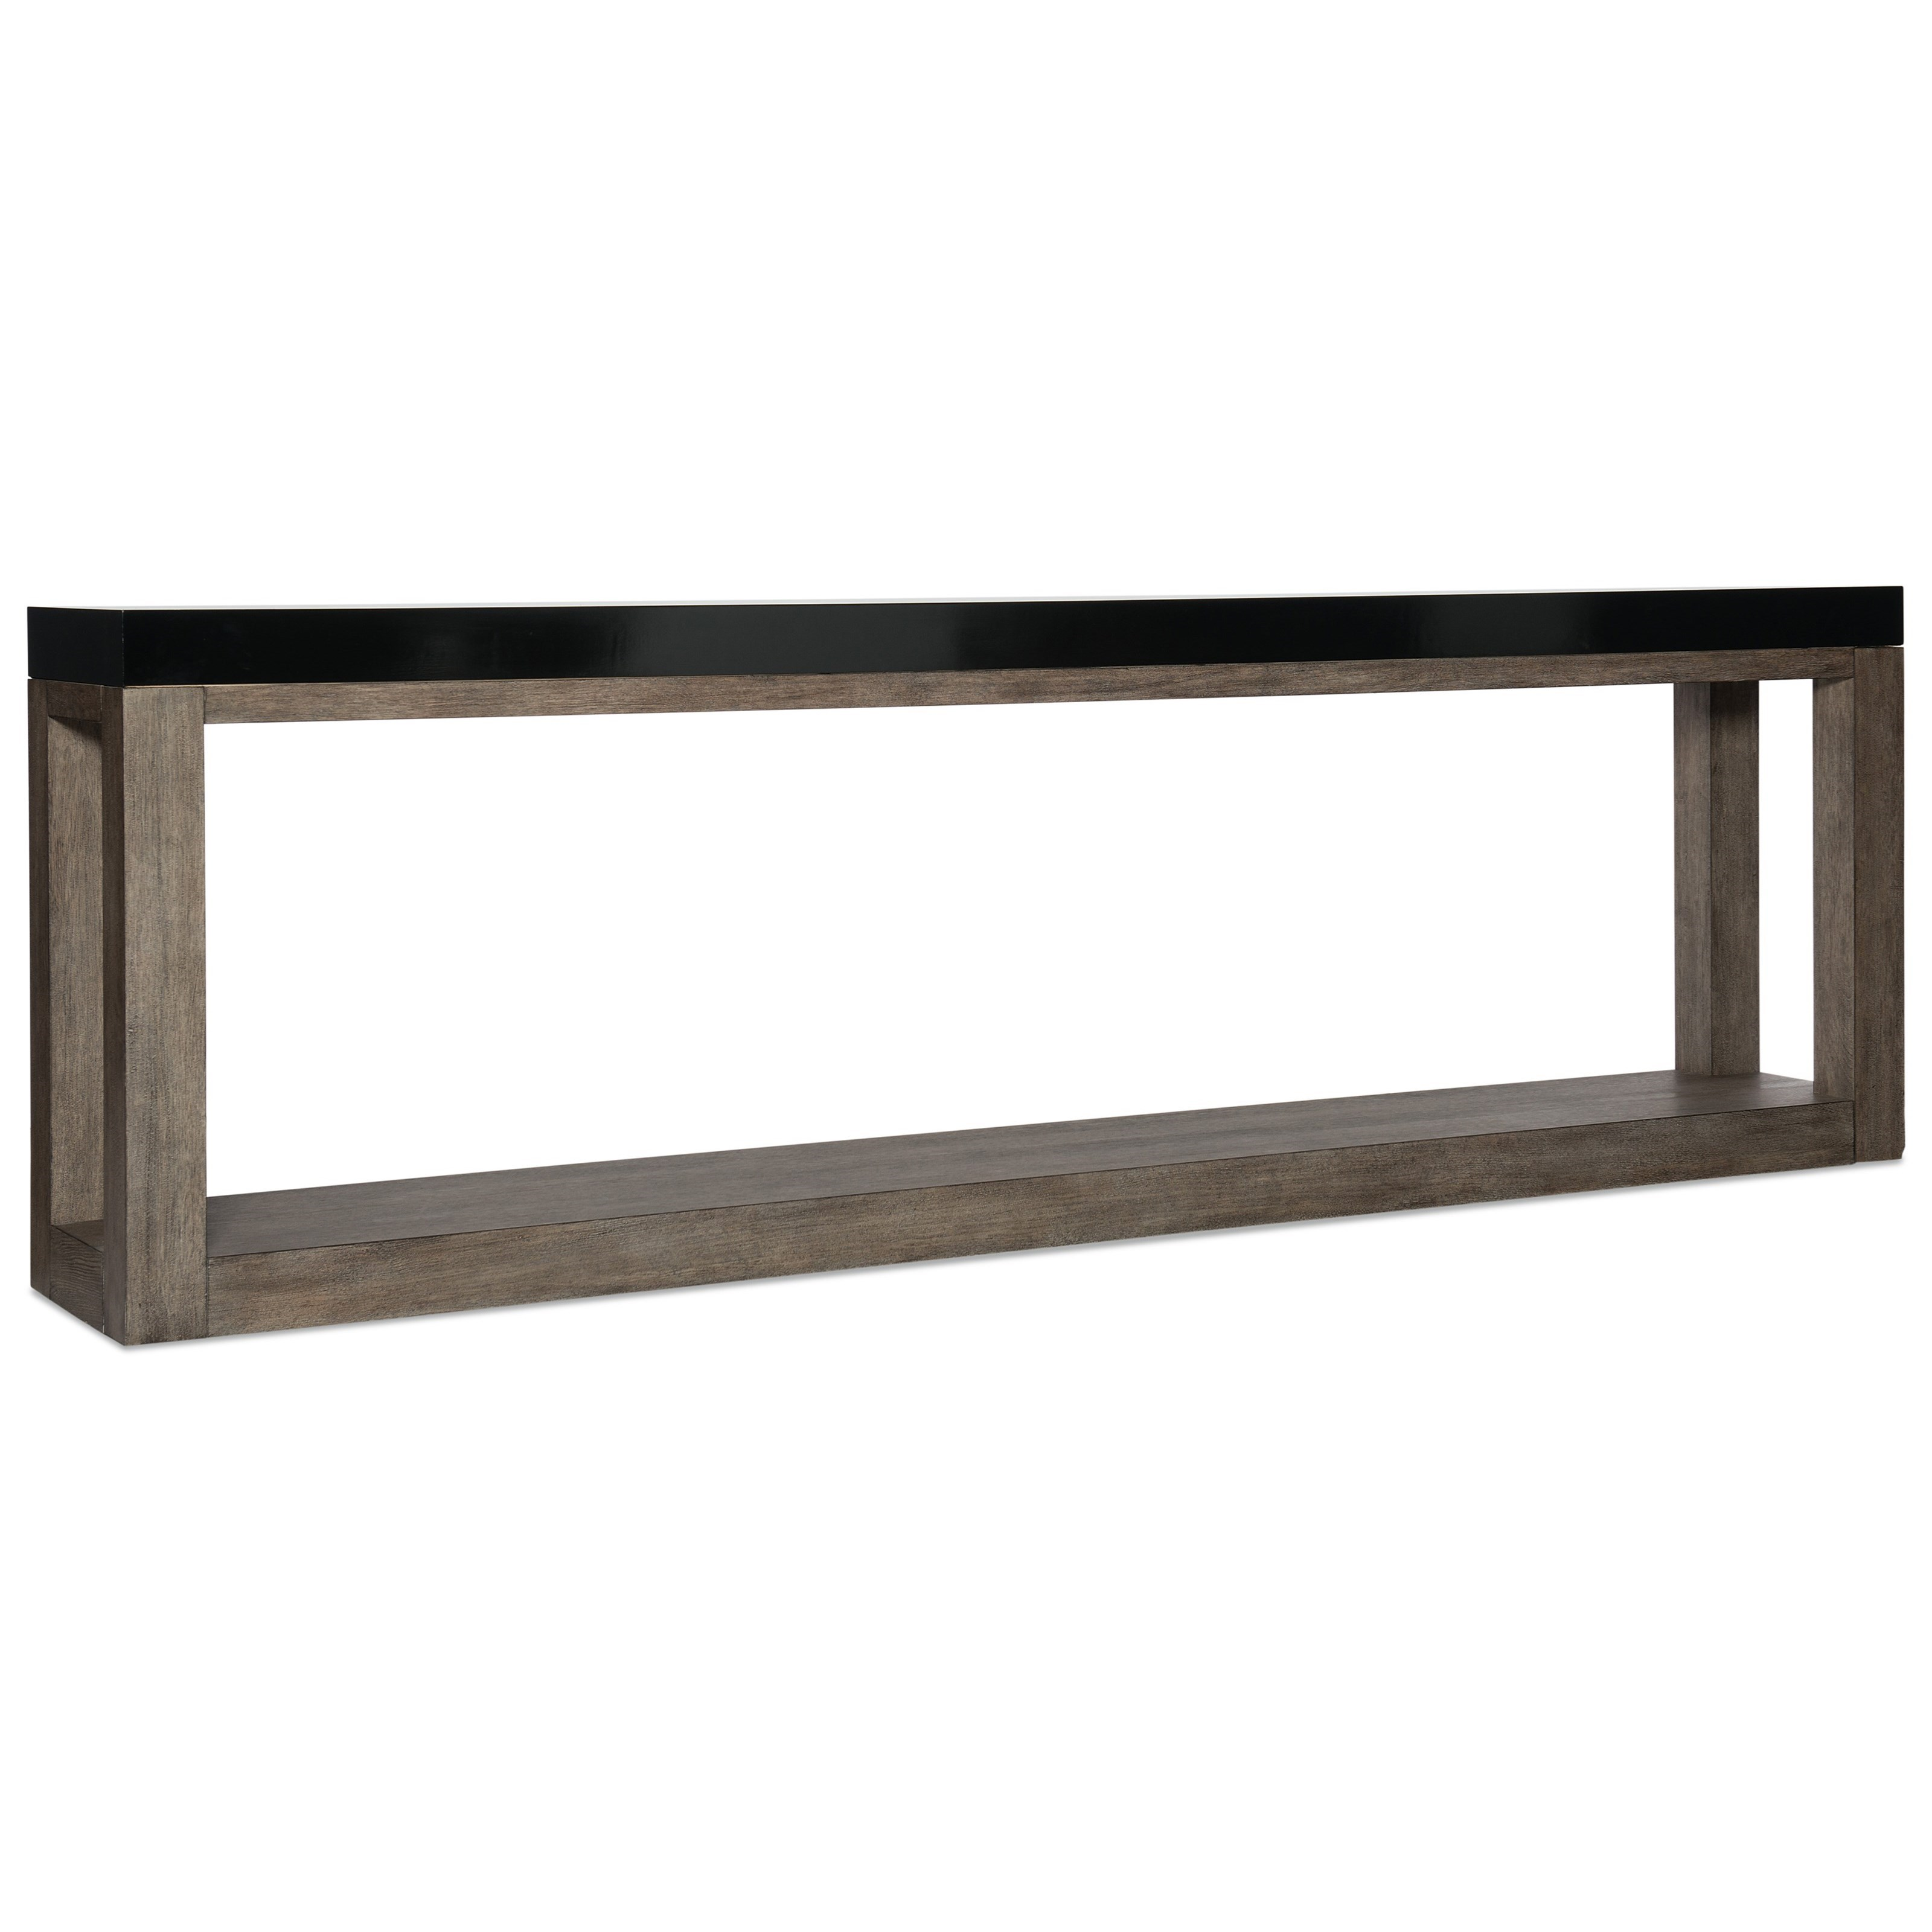 Melange Vienna Console by Hooker Furniture at Fisher Home Furnishings